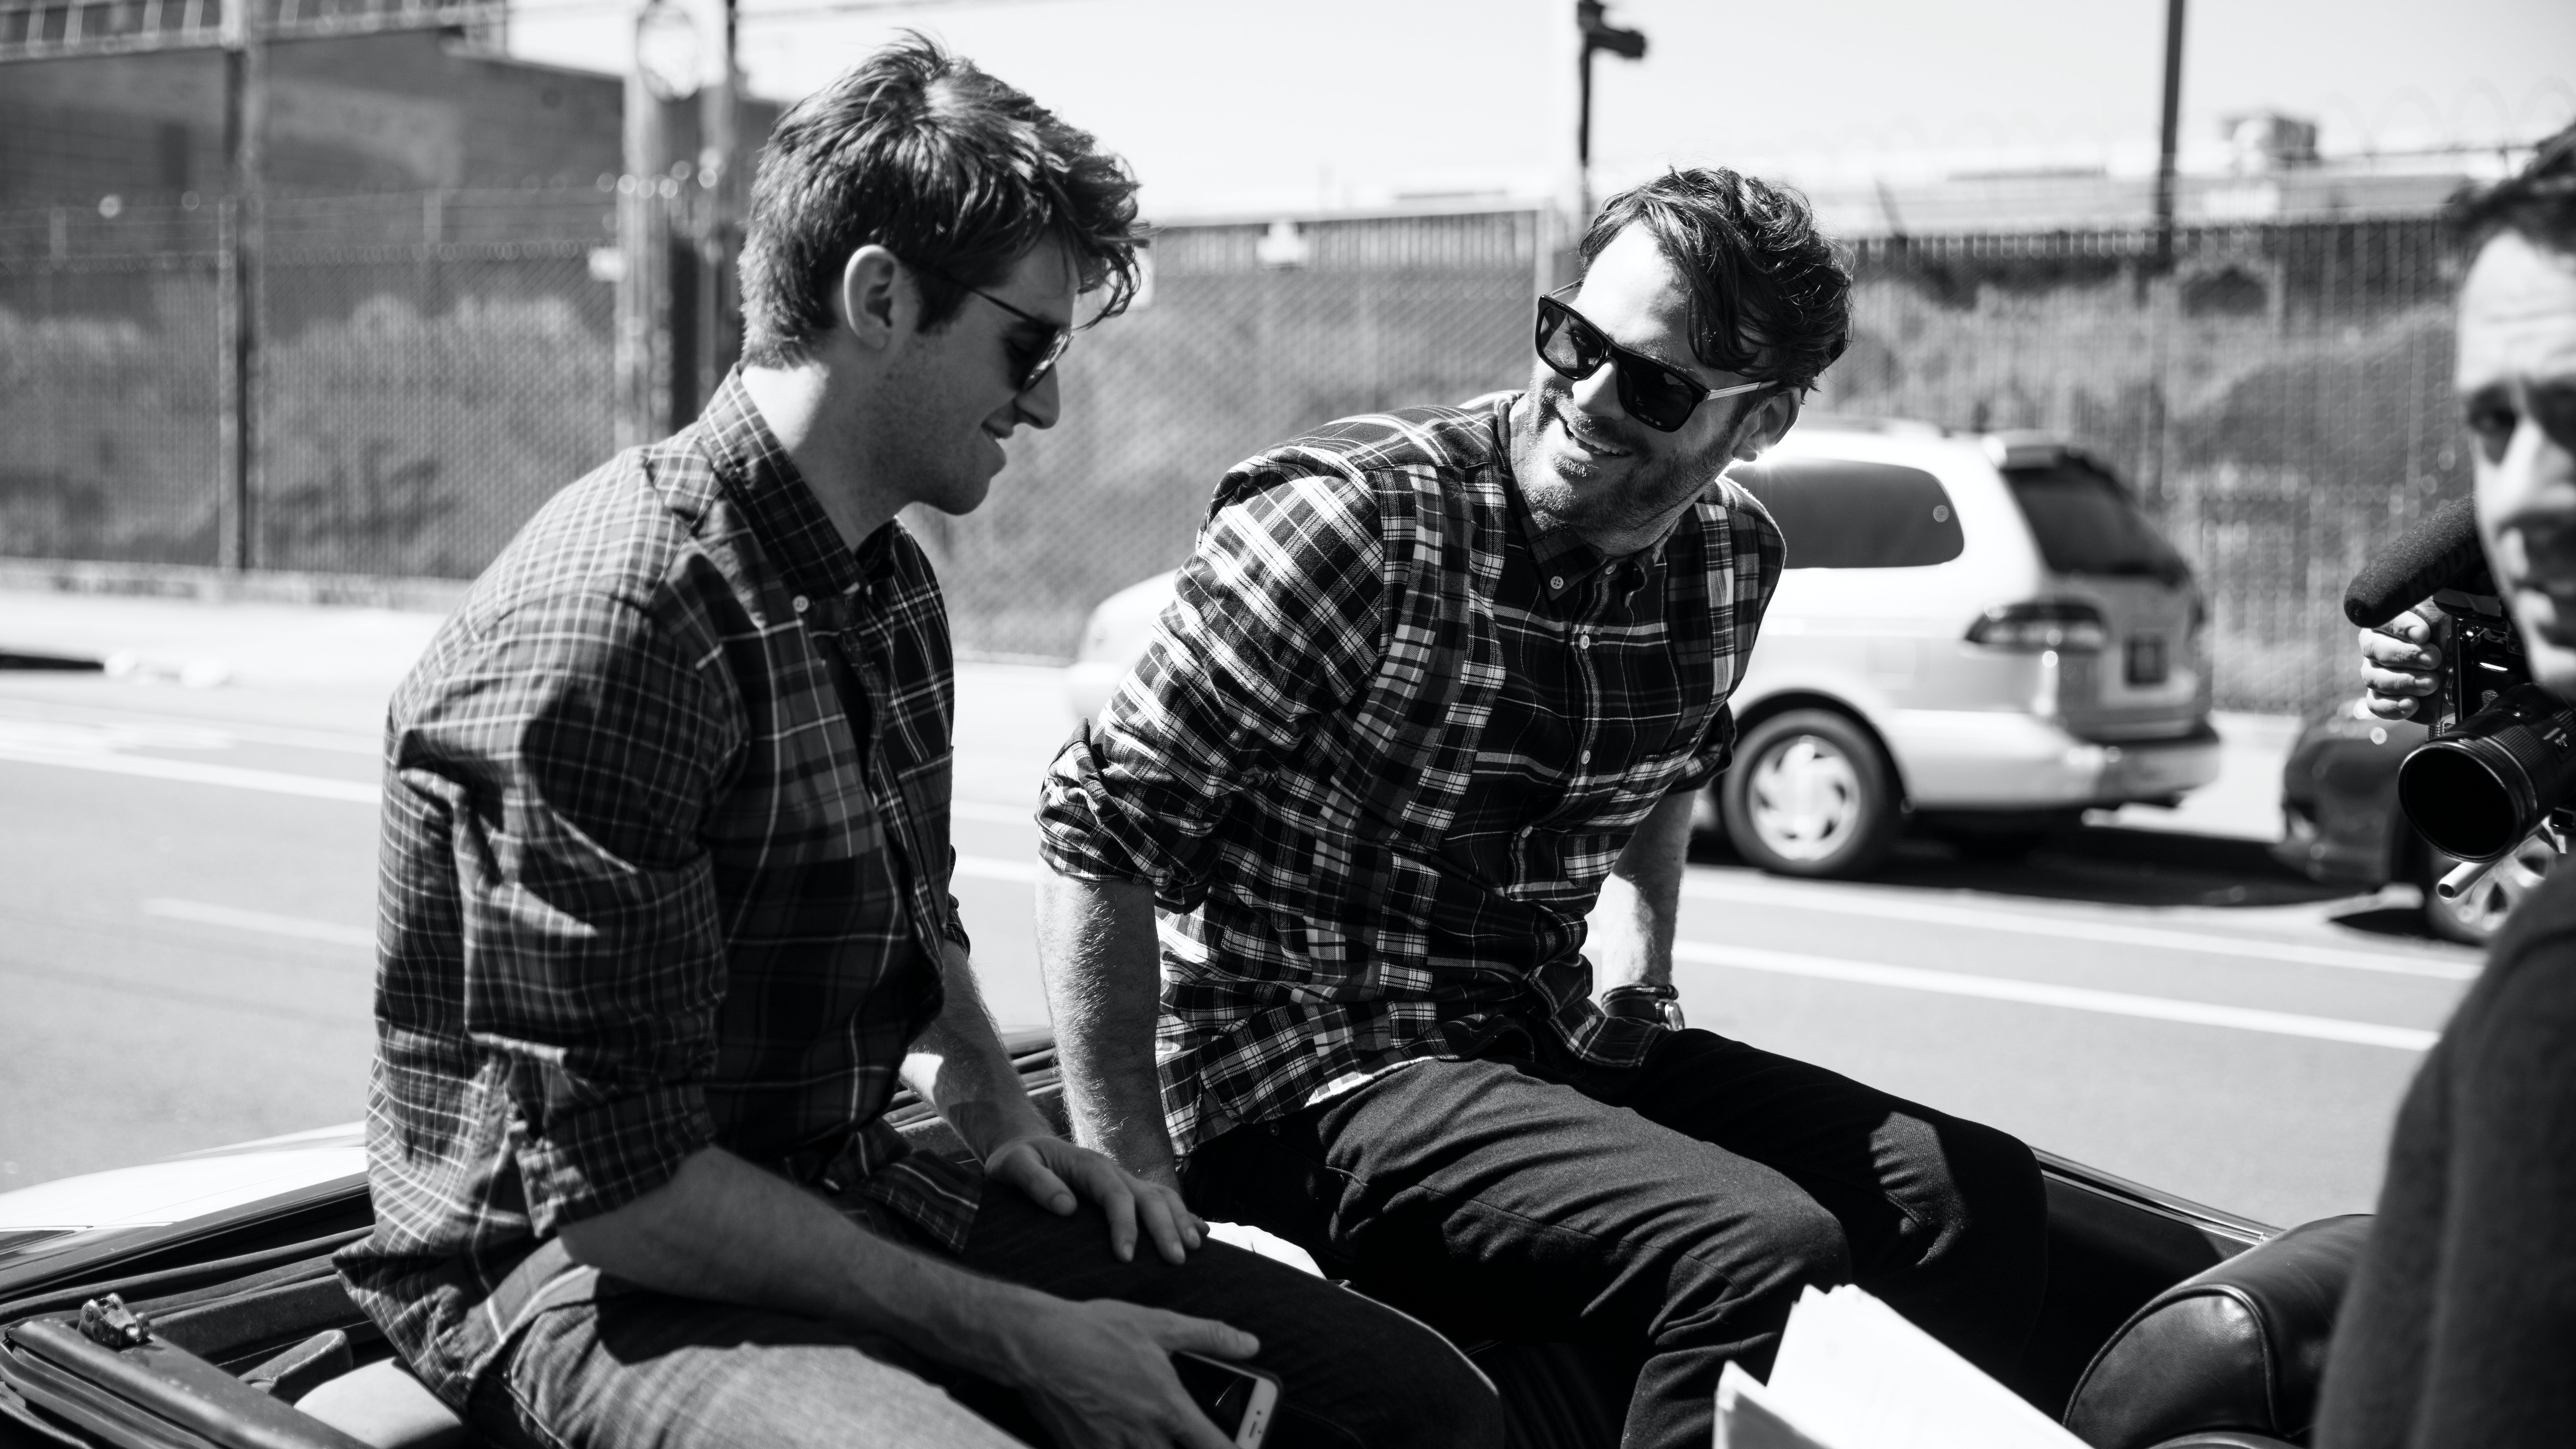 Drew Taggart and Alex Pall of The Chainsmokers | Source: Tommy Hilfiger